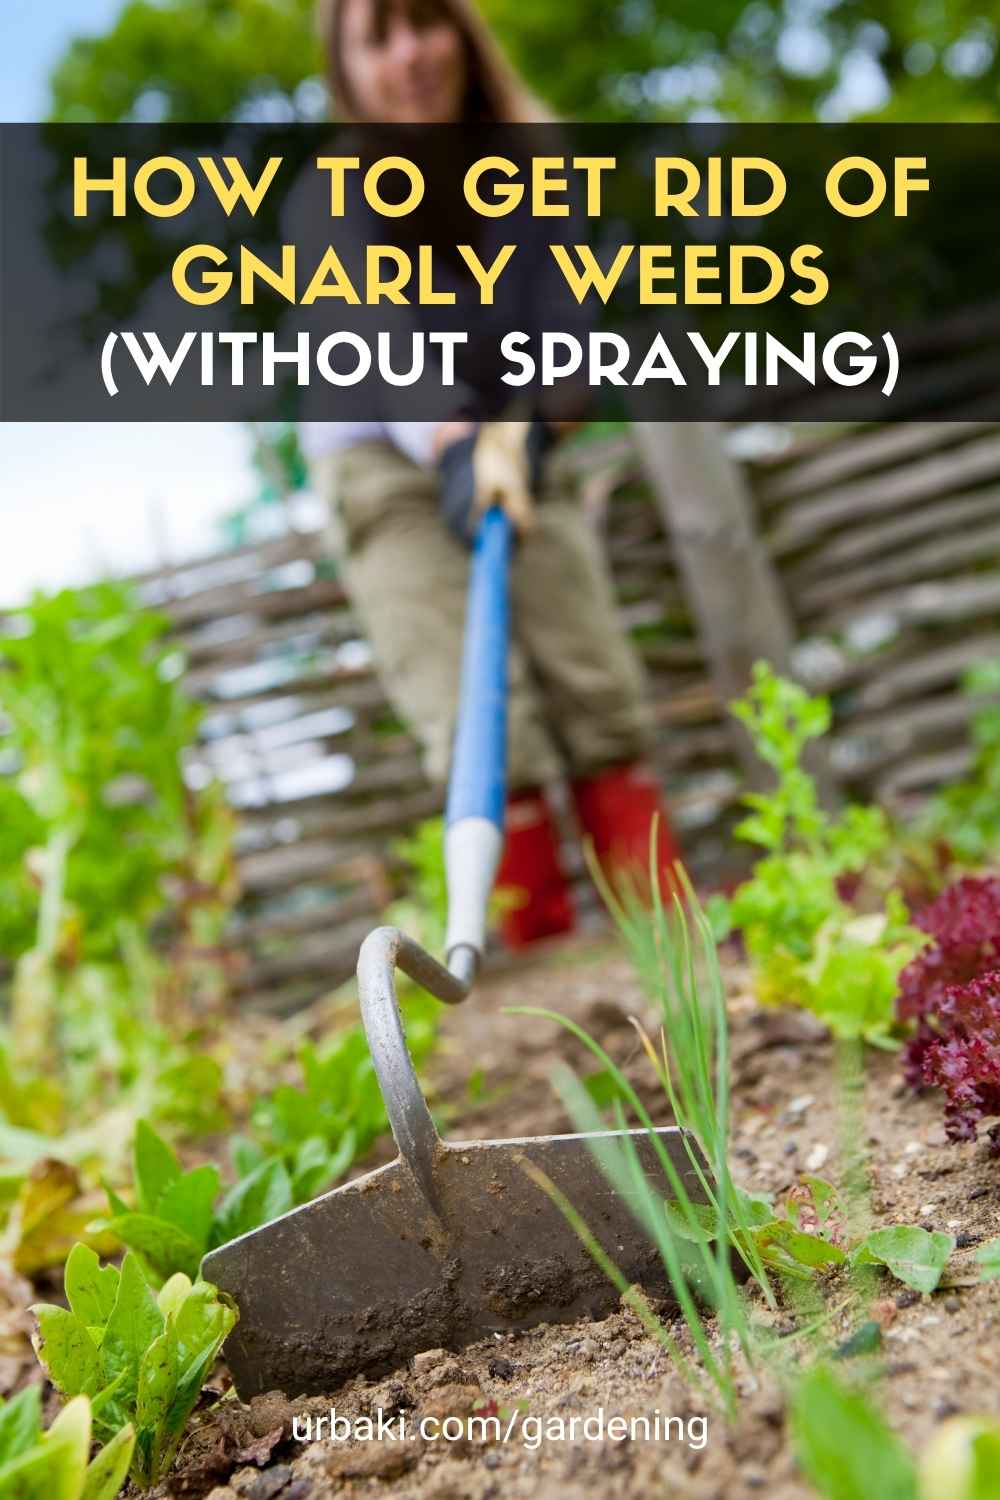 How To Get Rid Of Gnarly Weeds